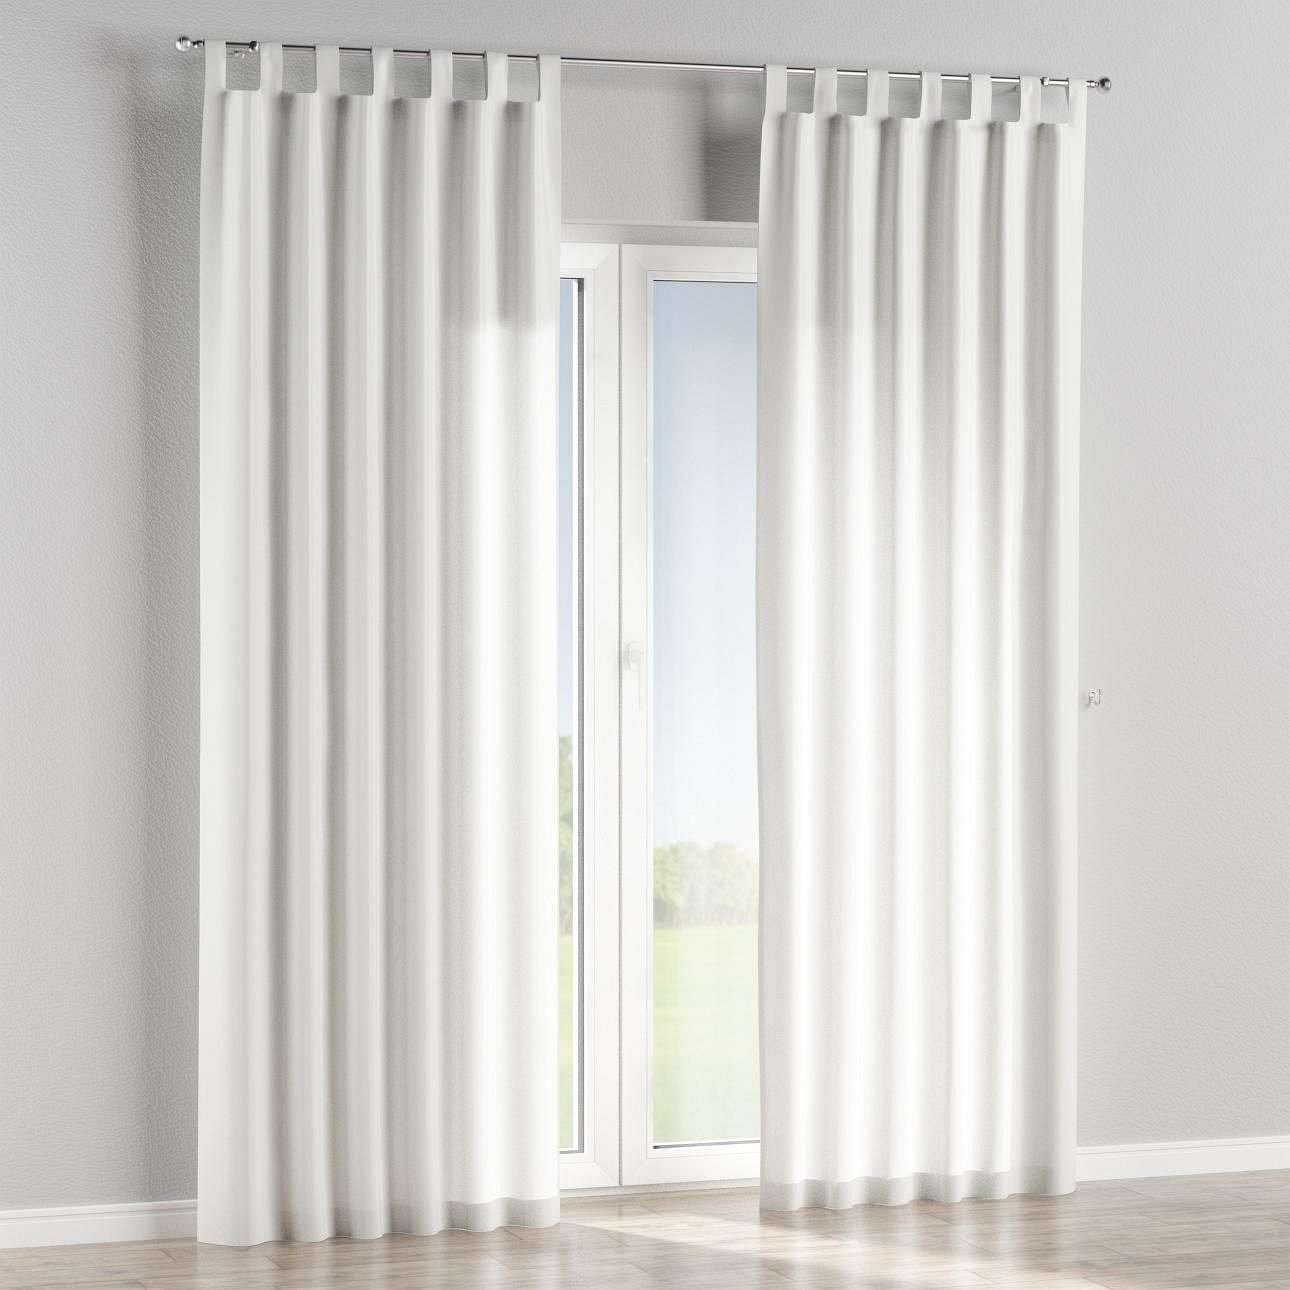 Tab top curtains in collection Fleur , fabric: 137-25